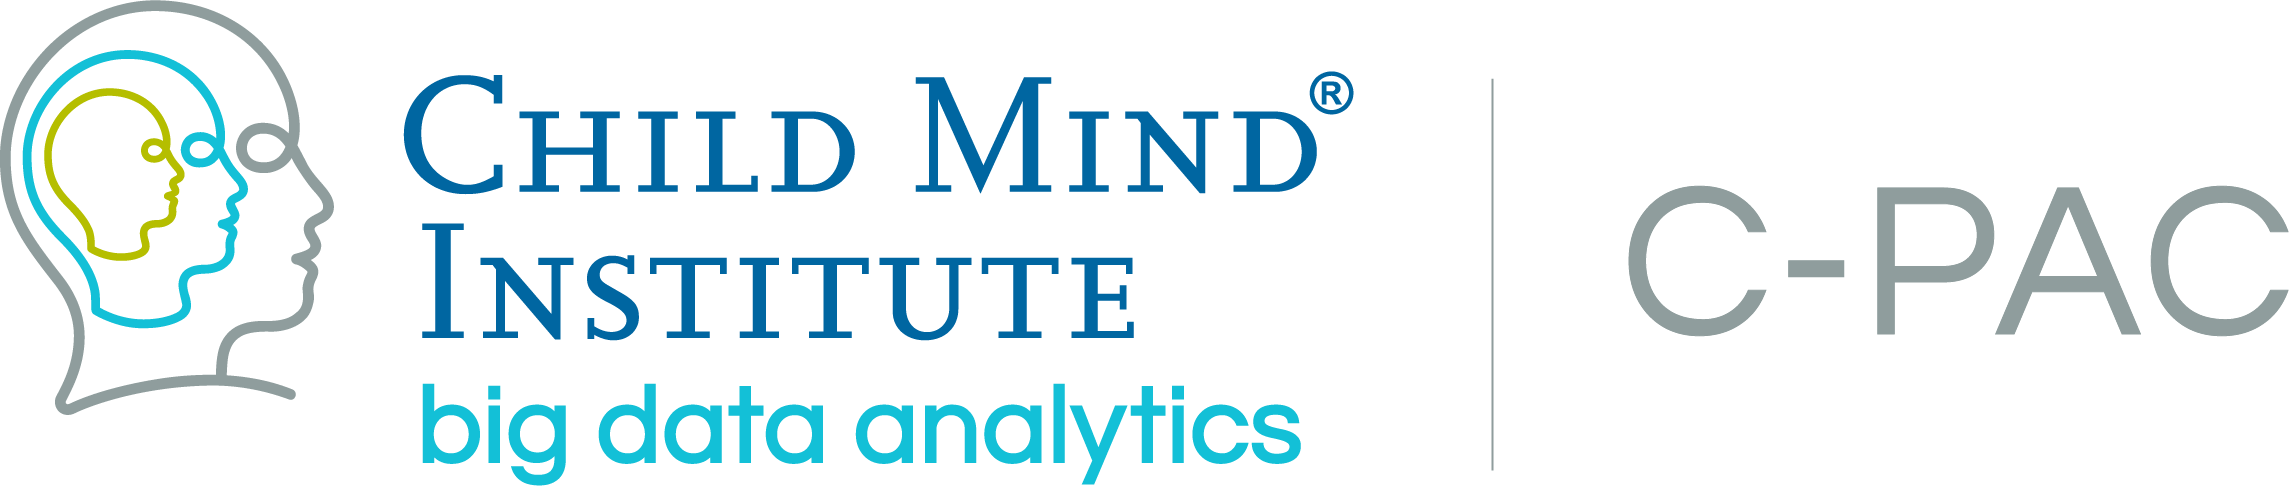 Configurable Pipeline for the Analysis of Connectomes - Child Mind Institute C-PAC